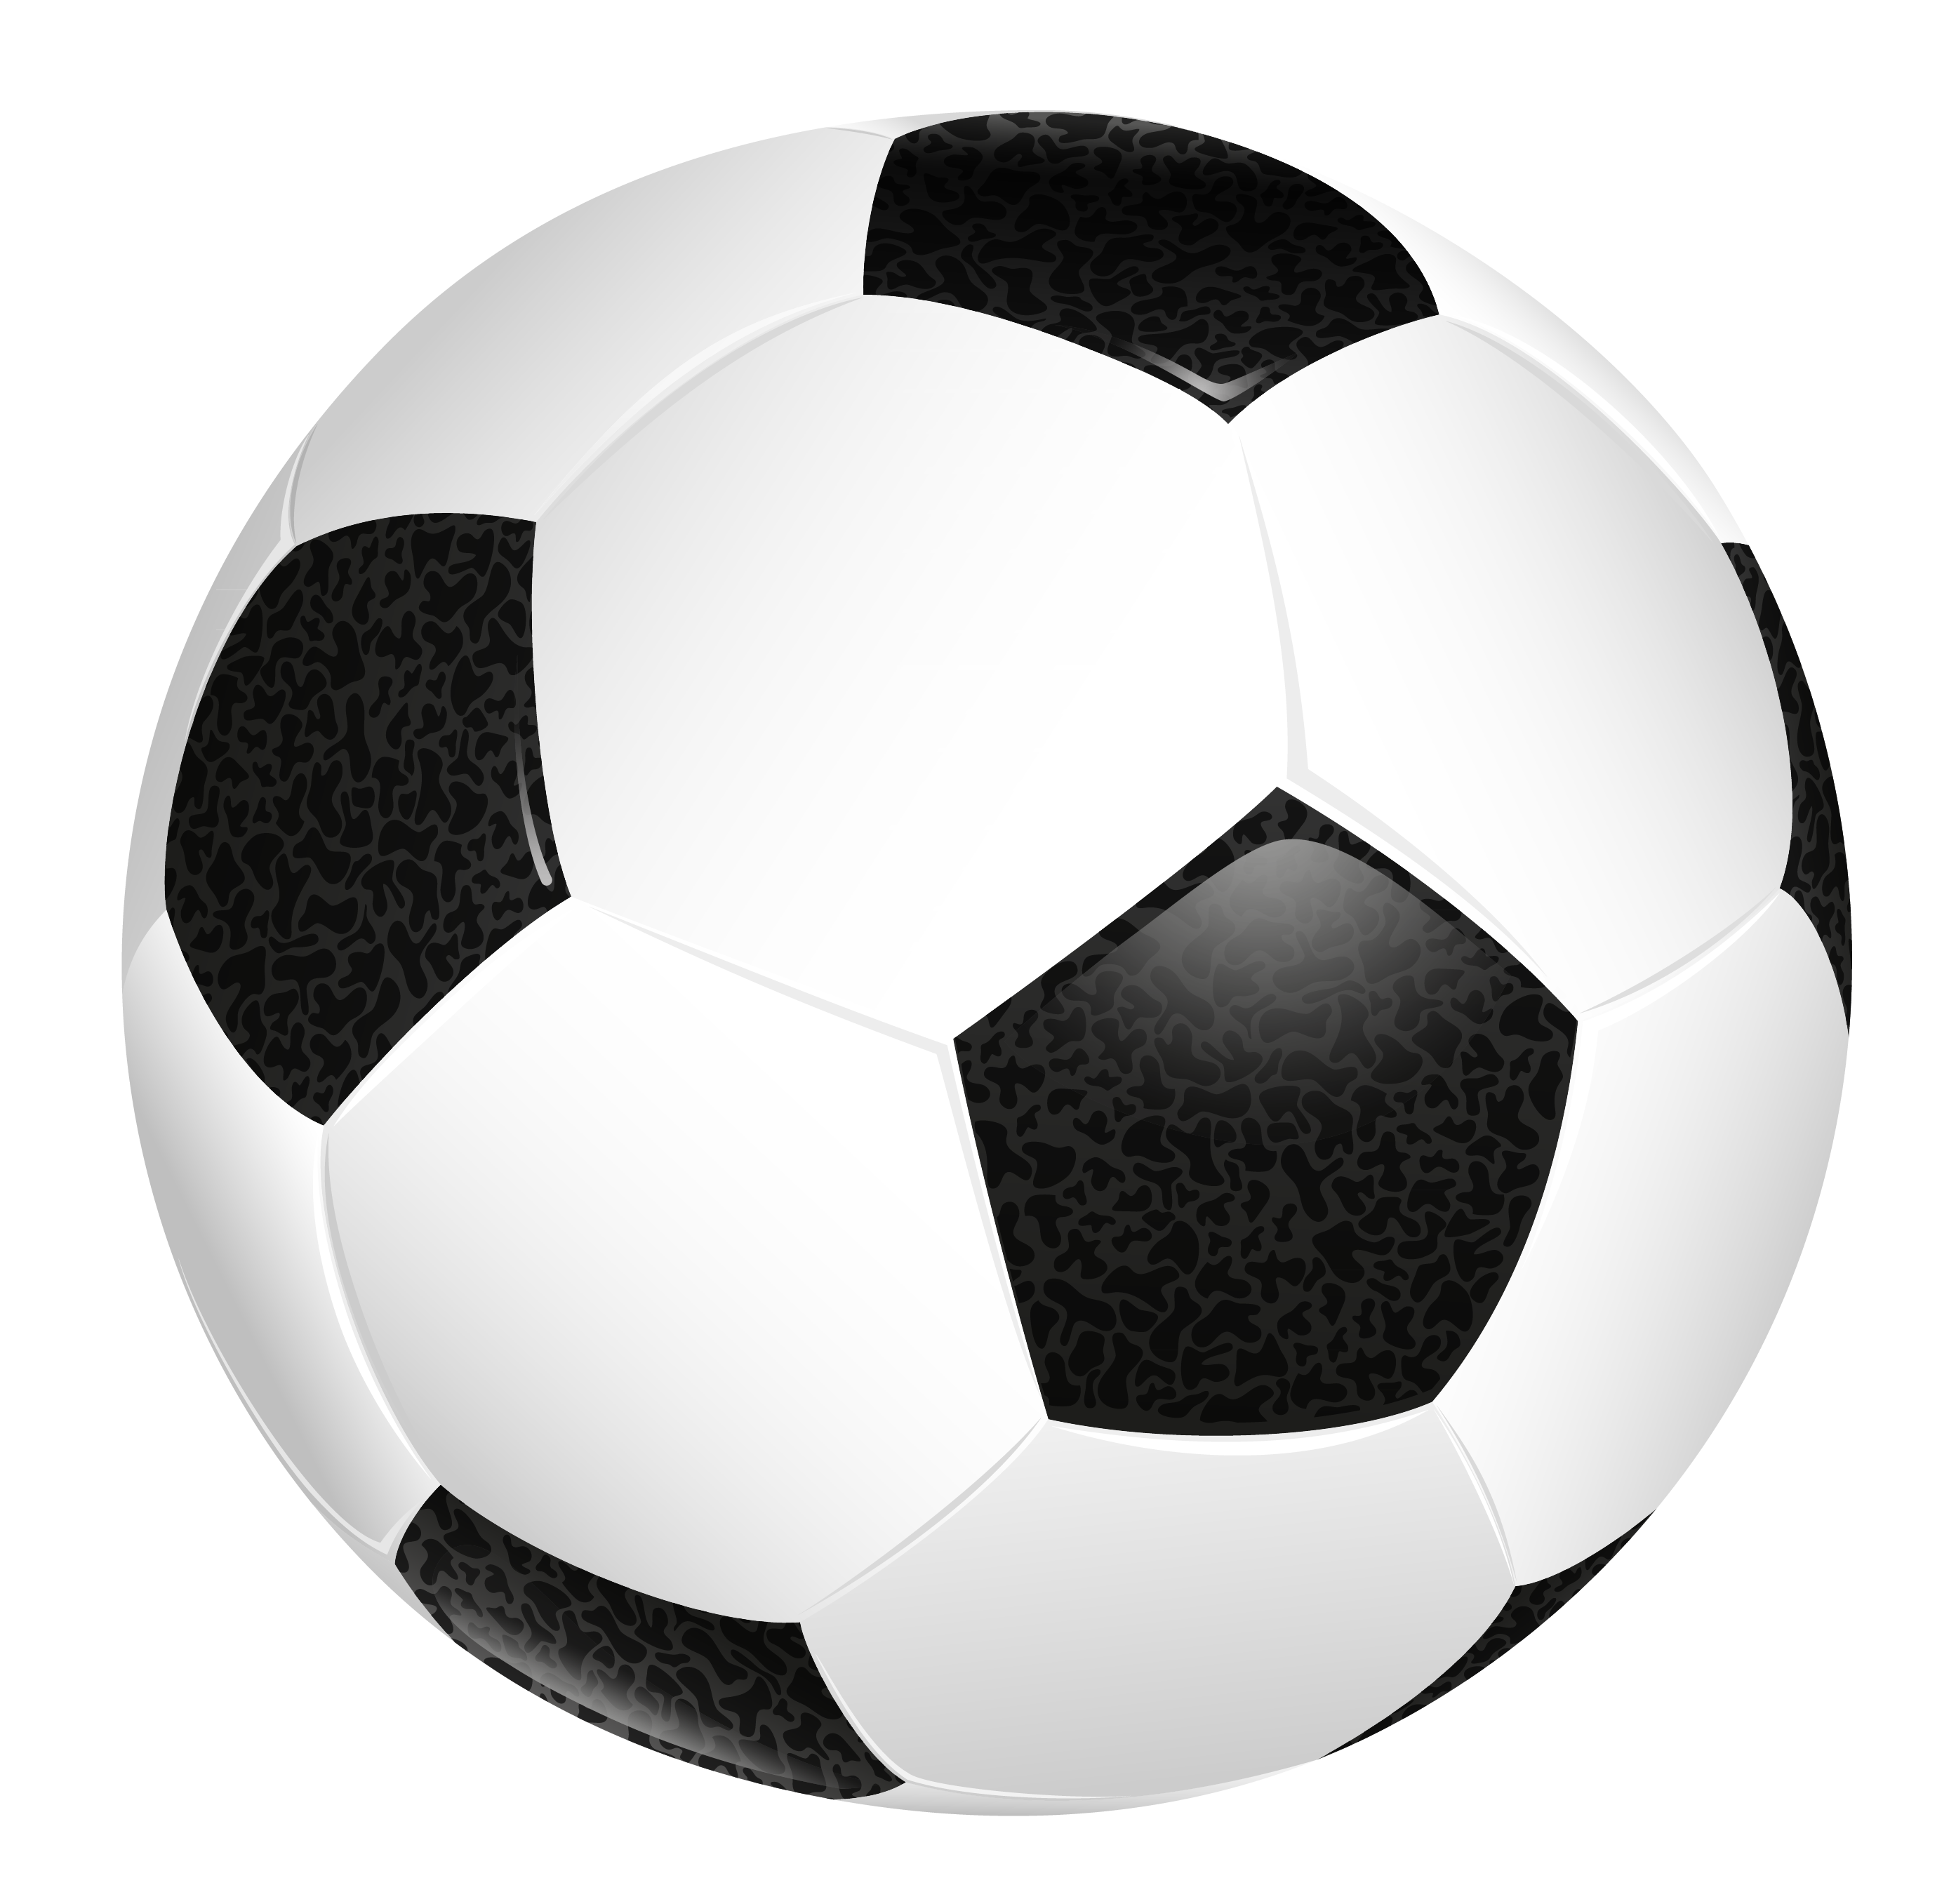 Download transparent png images. Football ball